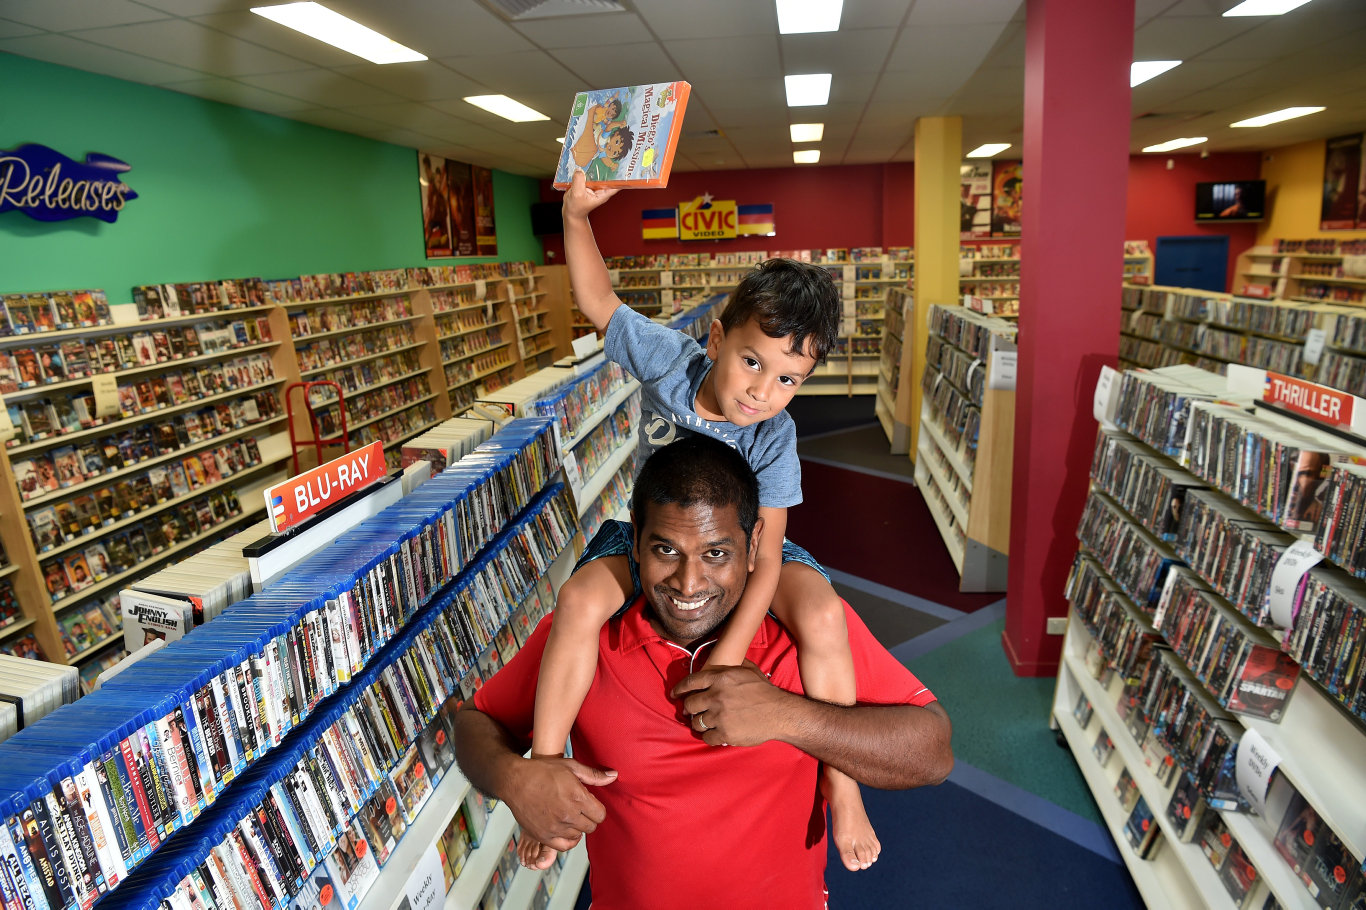 Nambour's last remaining video store will close its doors for good after more than a decade in the community.